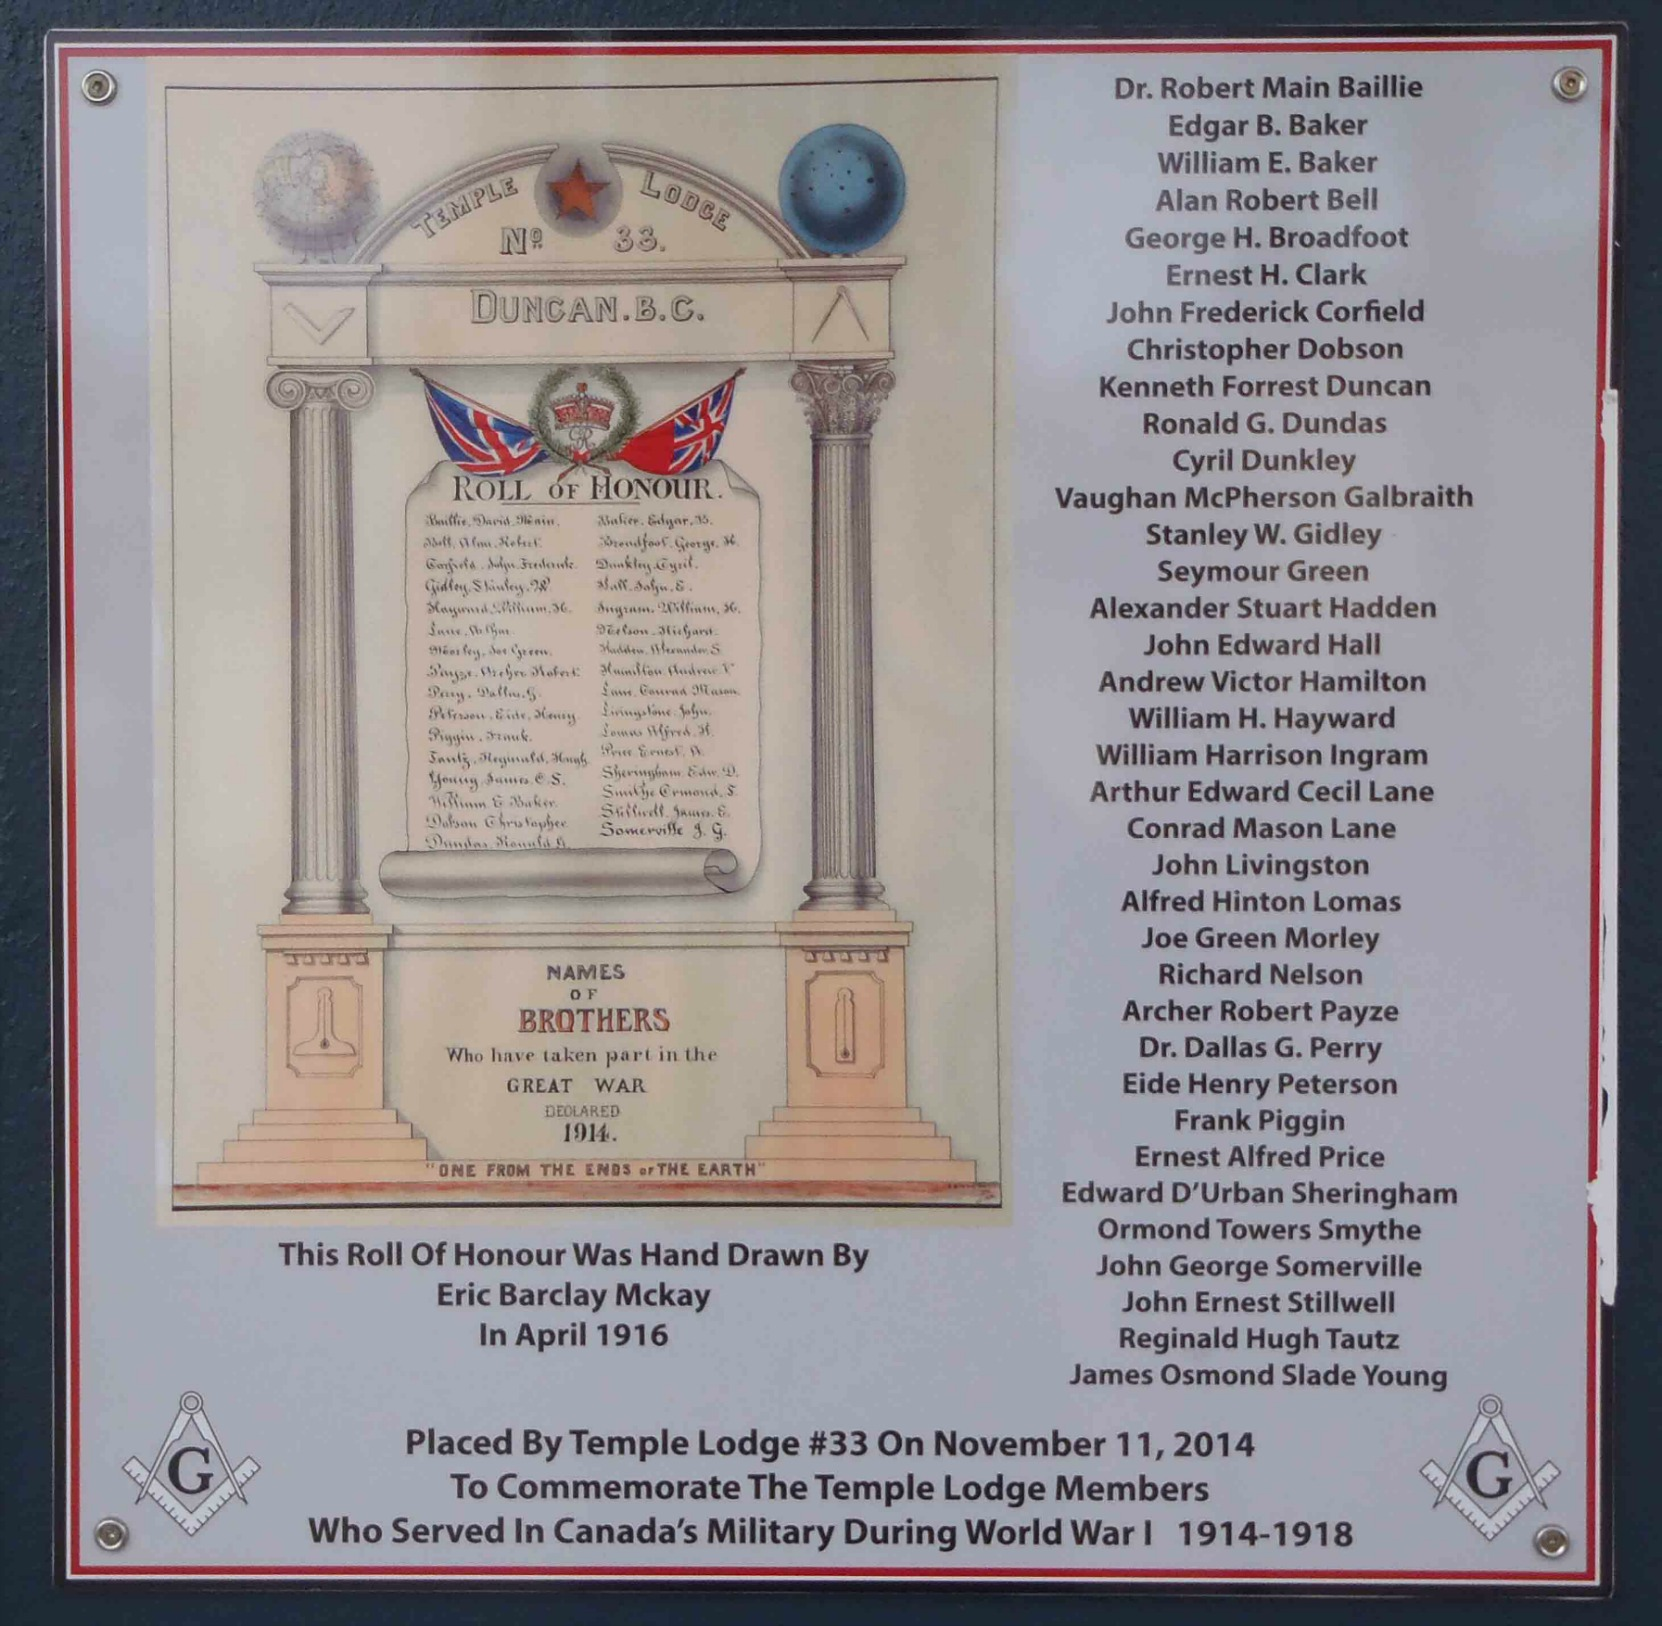 Our World War 1 Memorial Plaque, unveiled on our Duncan Masonic Temple on 11 November 2014